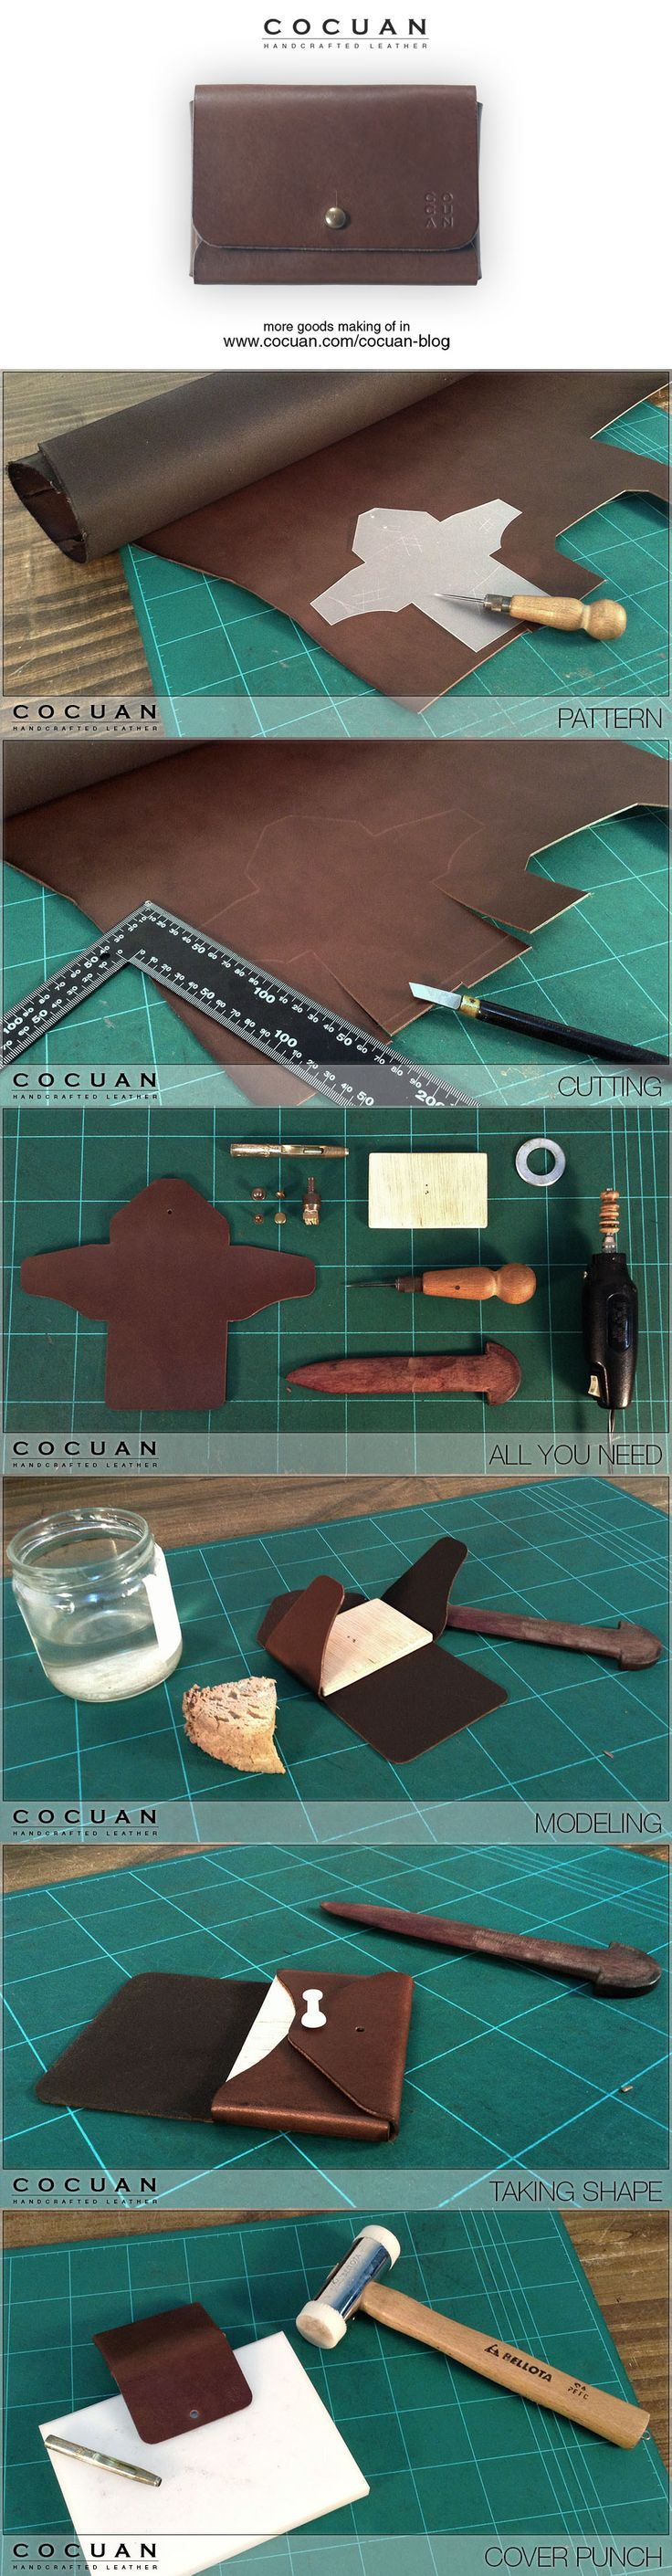 "Card wallet making of www.cocuan.com...""Spoony says"": This is simple and sweet!"